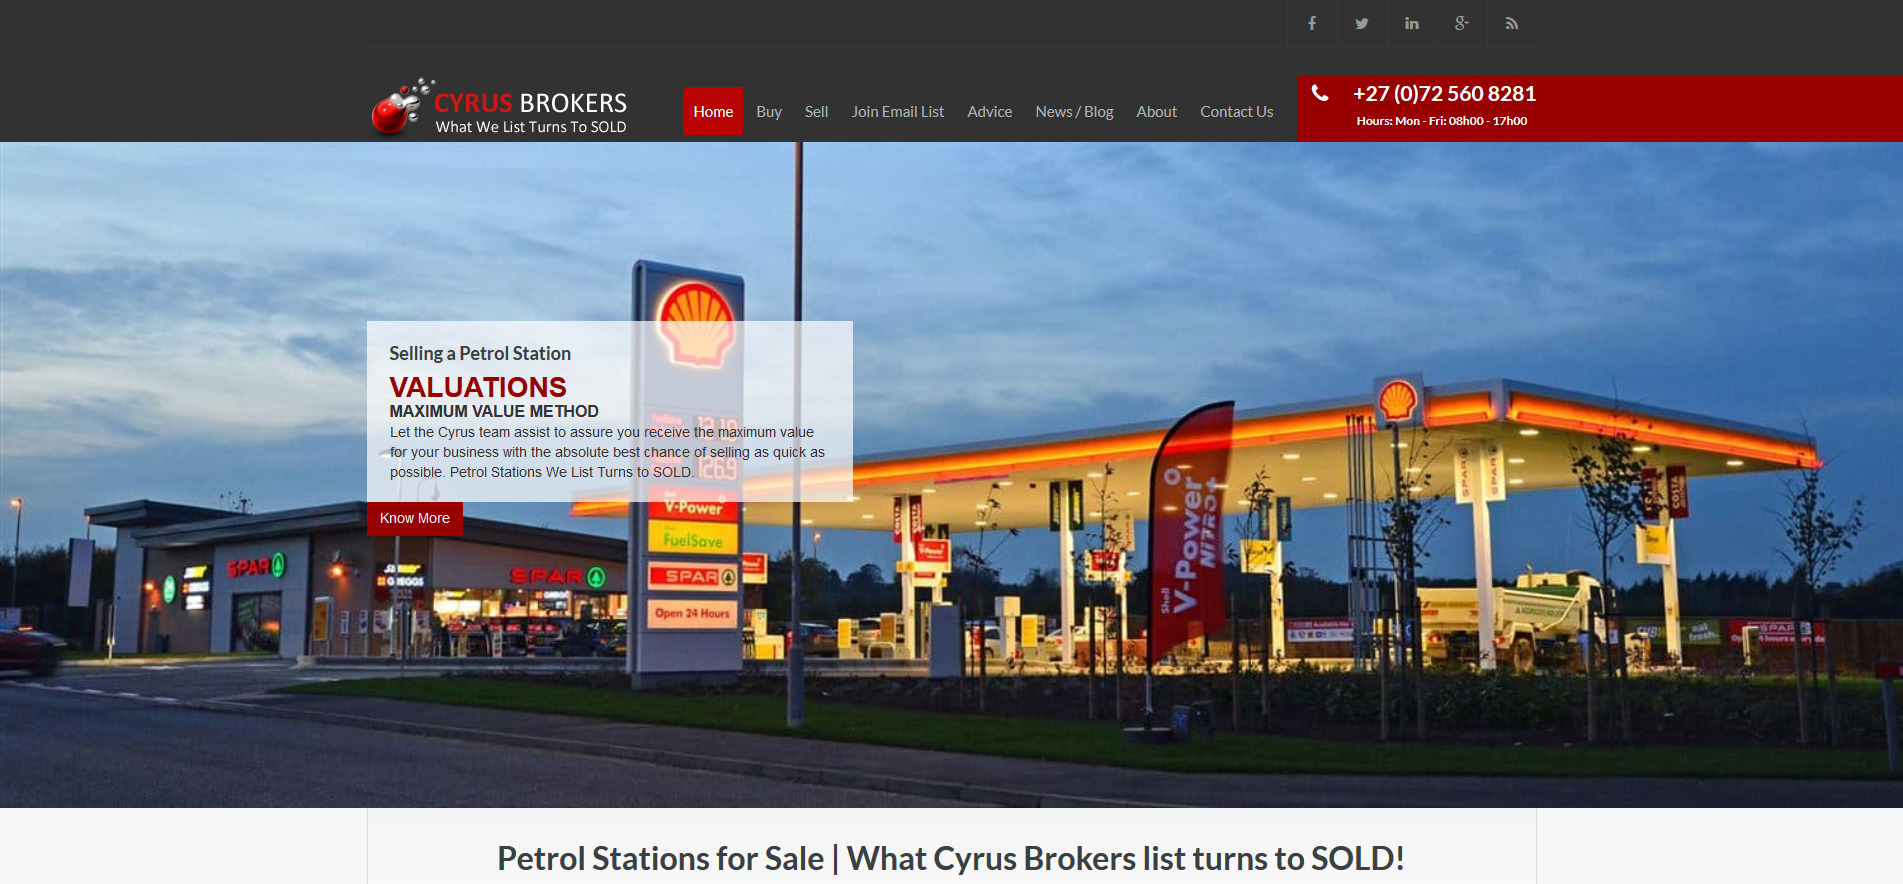 Cyrus Business Brokers South Africa | Petrol Stations For Sale